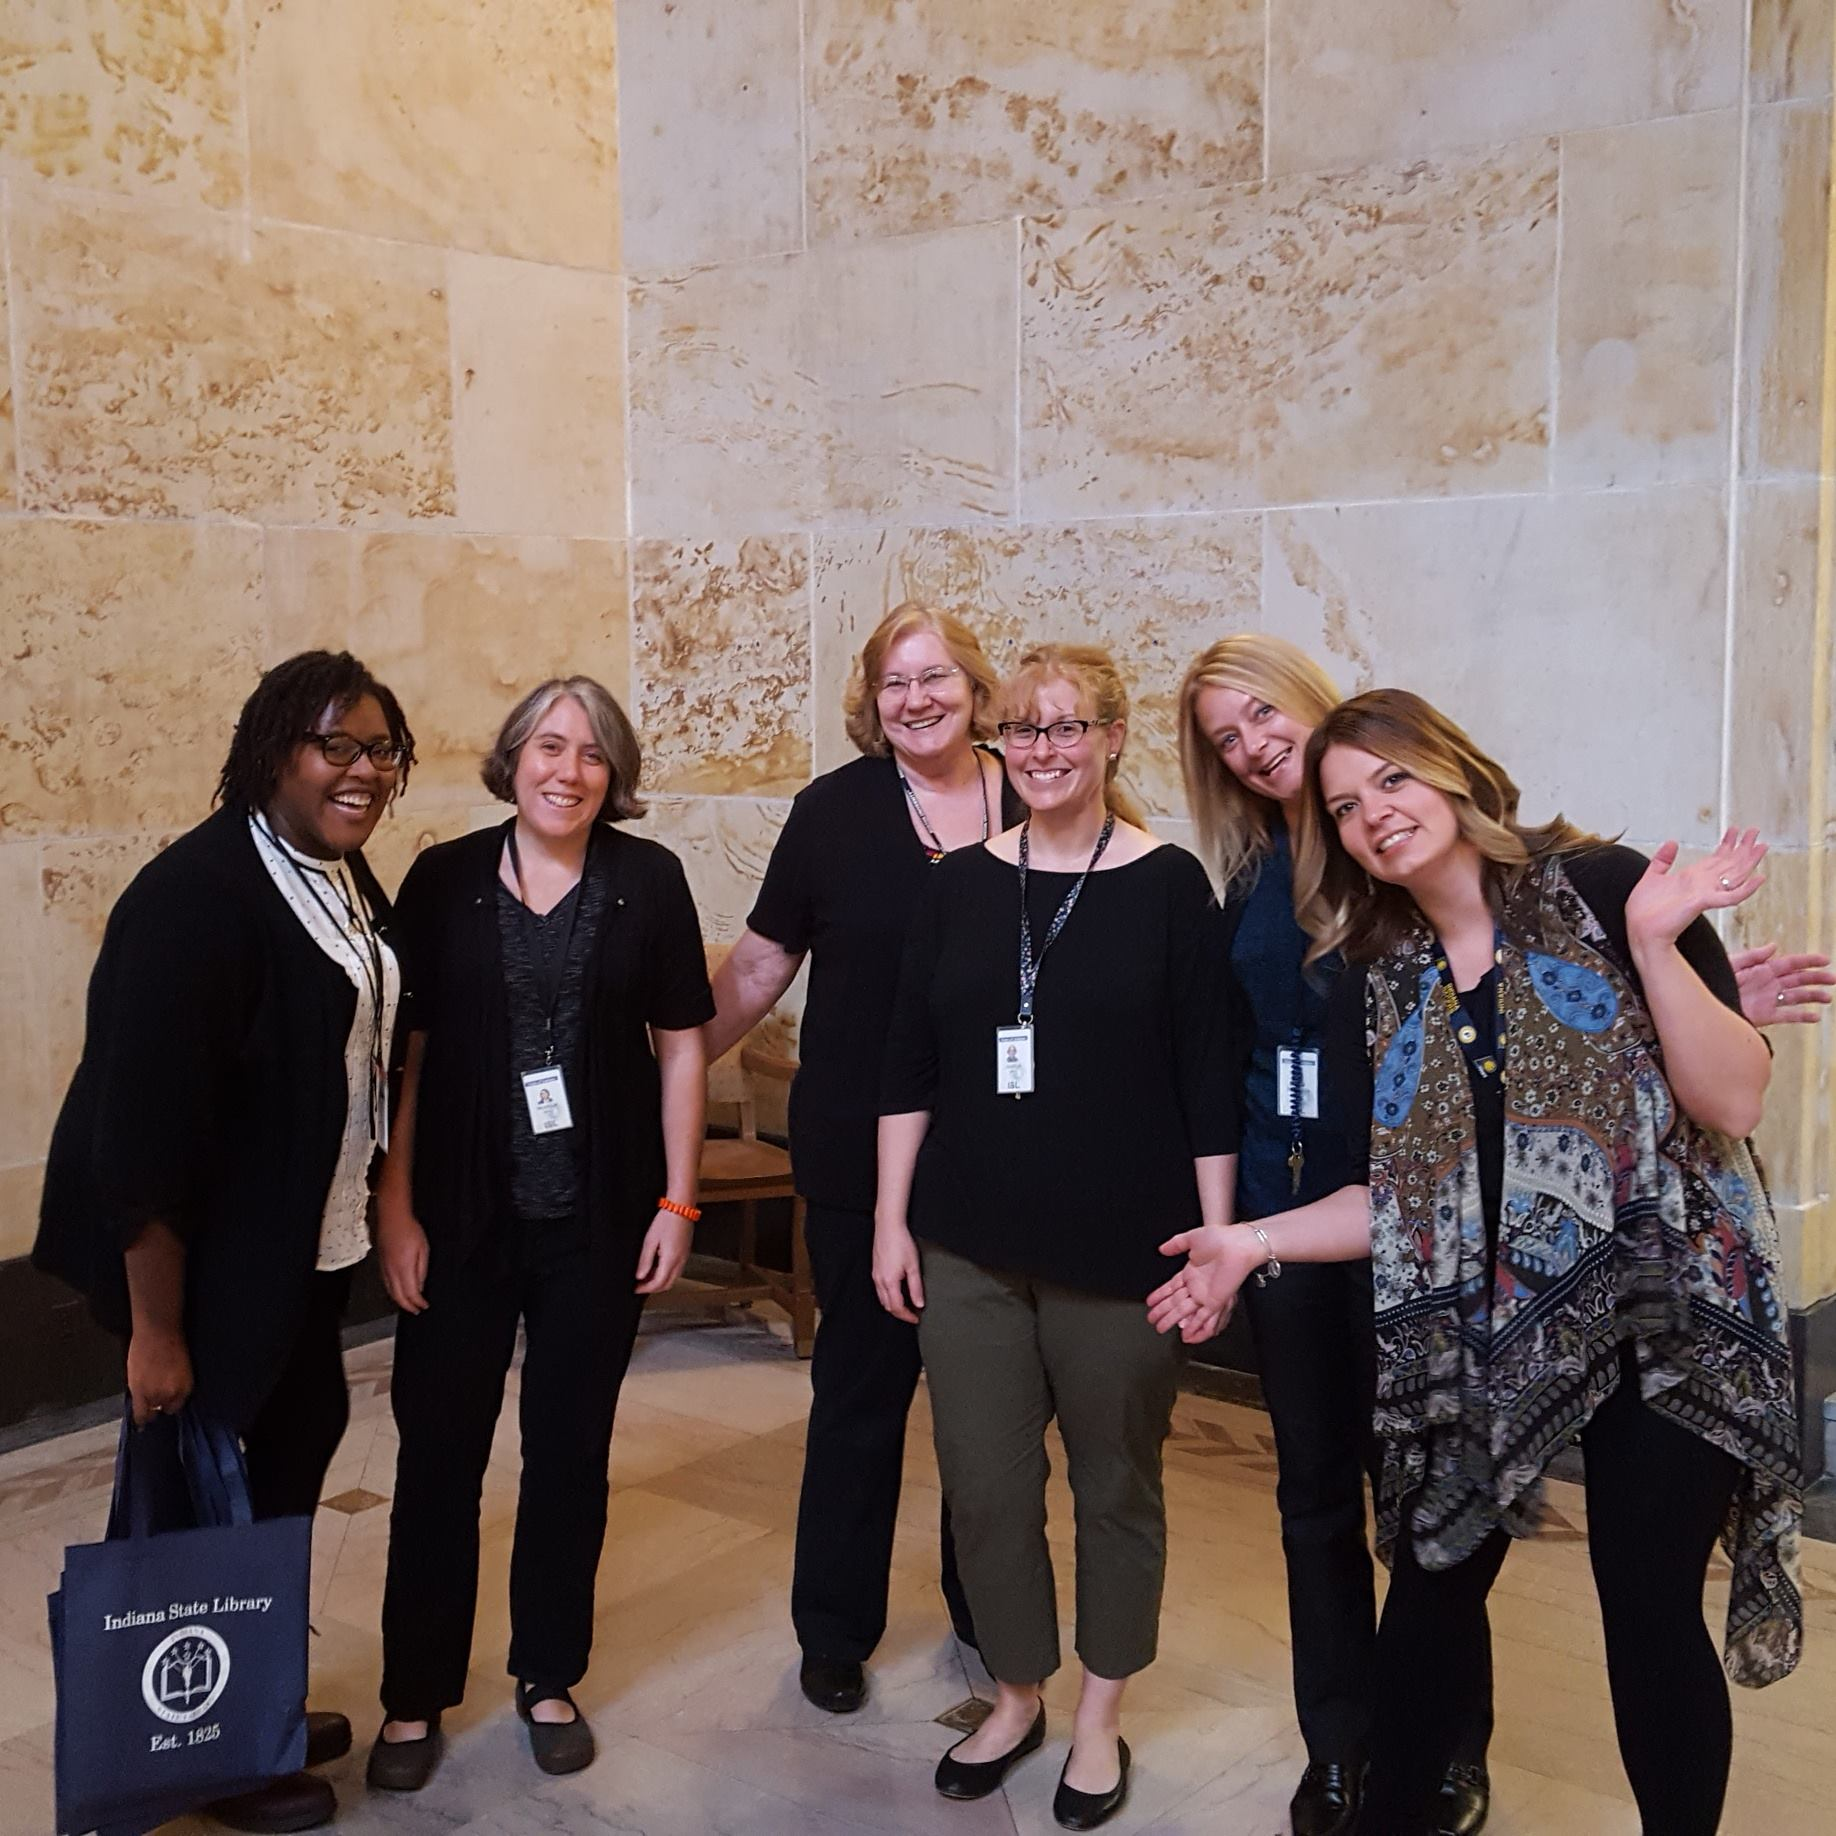 Pictured: Stephanie Smith (Circulation), Monique Howell (Indiana), Marcia Caudell (Reference), Jocelyn Lewis (Catalog), Stephanie Asberry (Genealogy), Bethany Fiechter (Rare Books & Manuscripts)